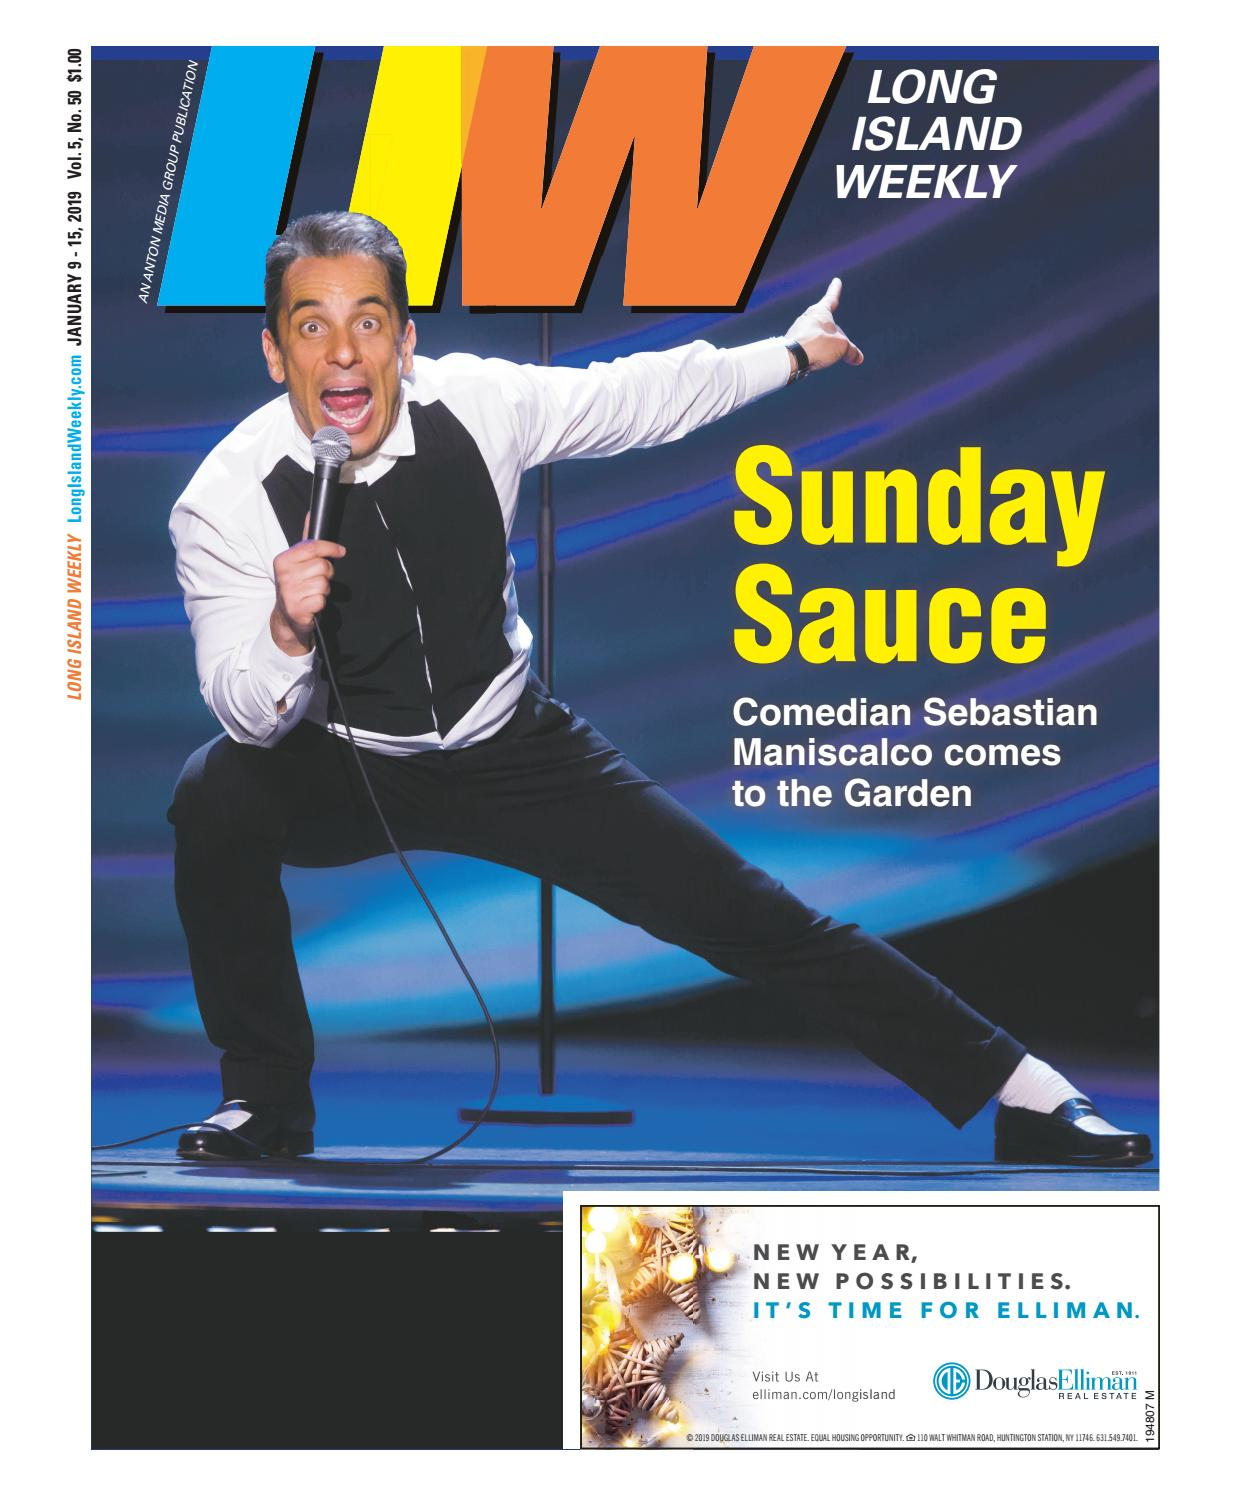 Long Island Weekly 01-09-19 by Anton Community Newspapers - issuu